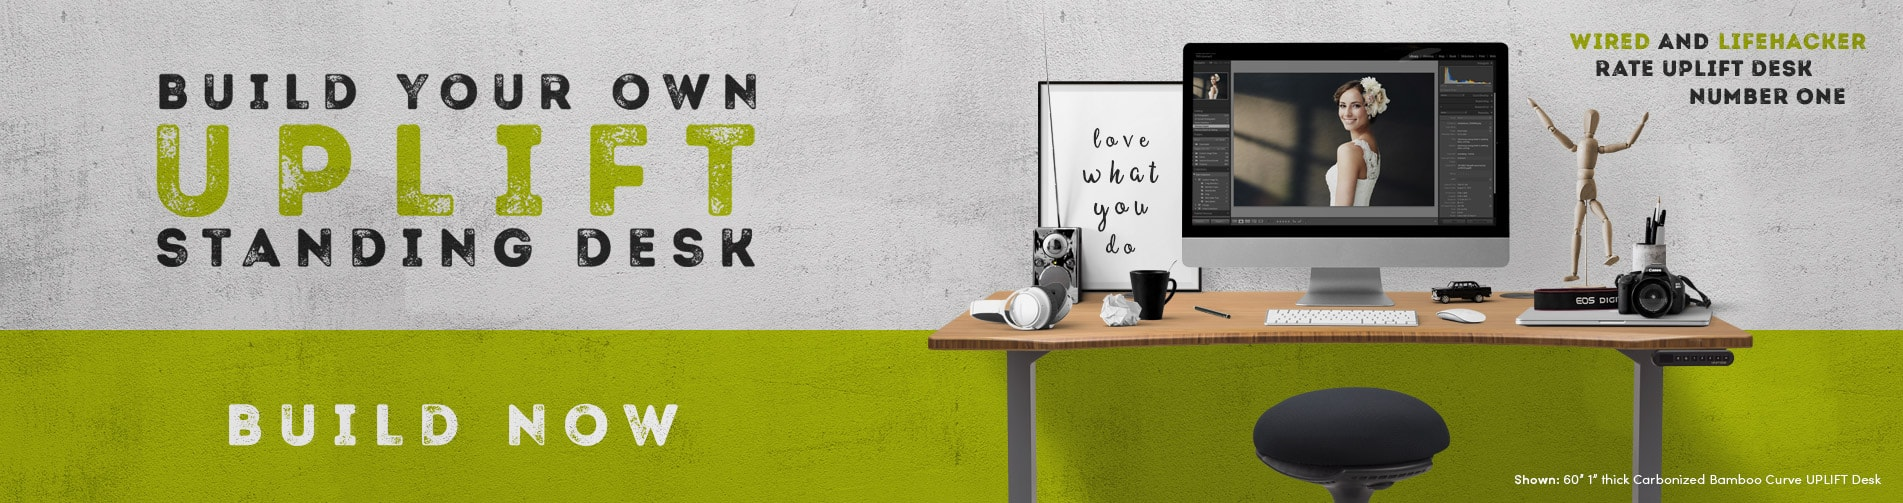 Build Your Own UPLIFT Standing Desk